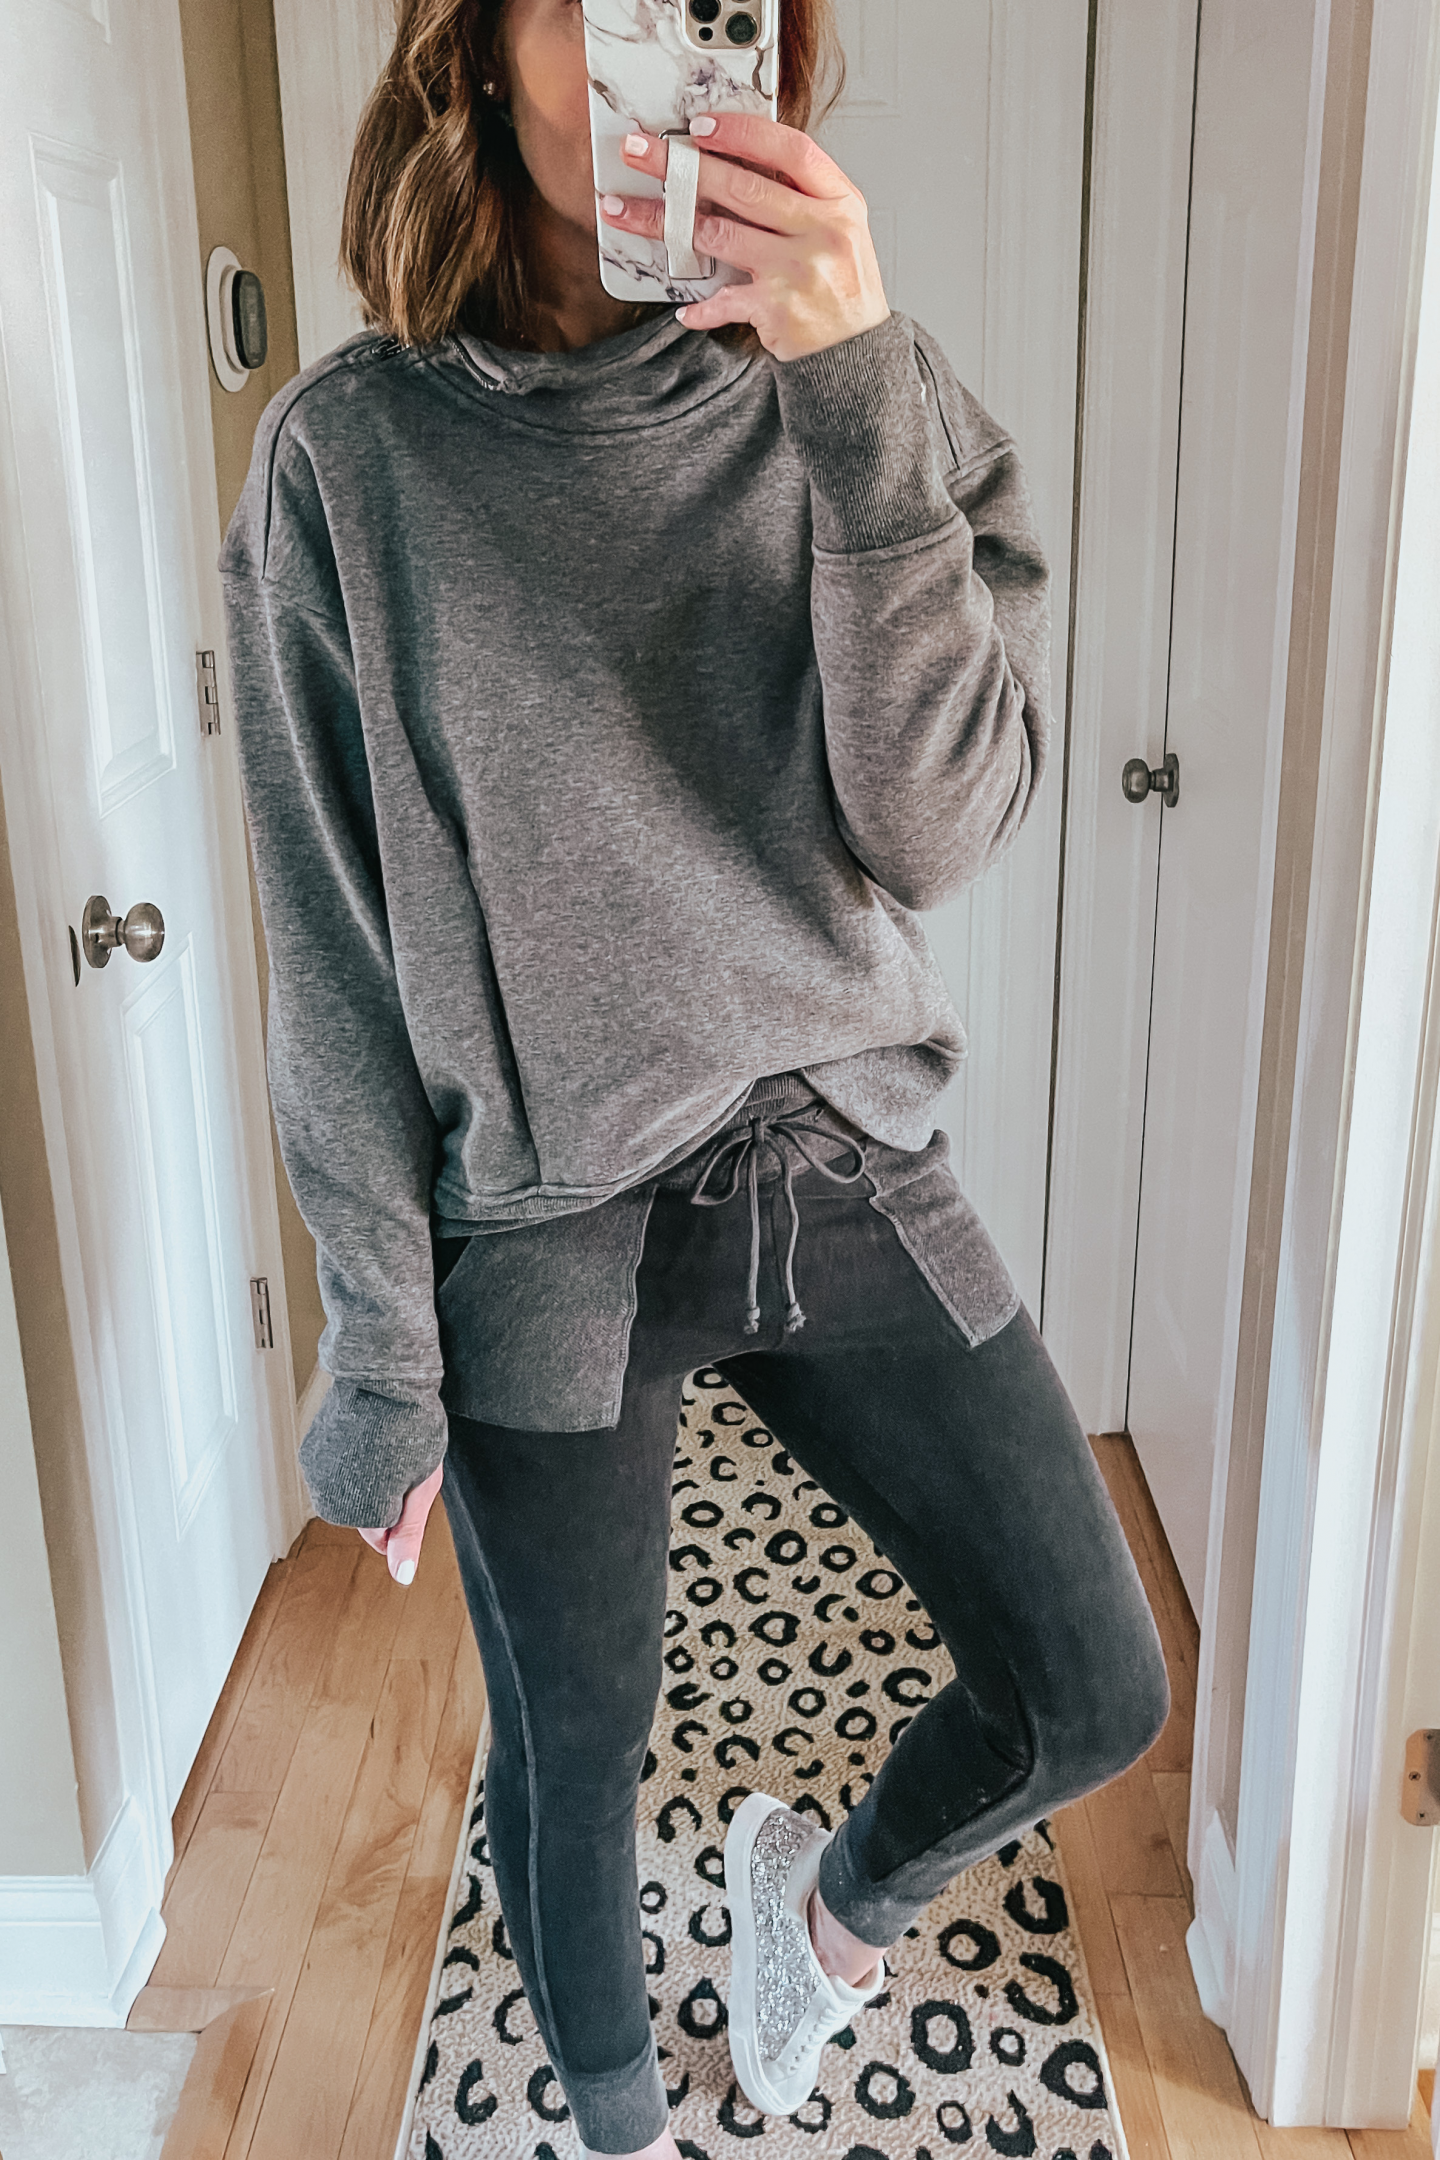 Target Outfits You Need This Winter, cute athleisure outfit, leggings joggers